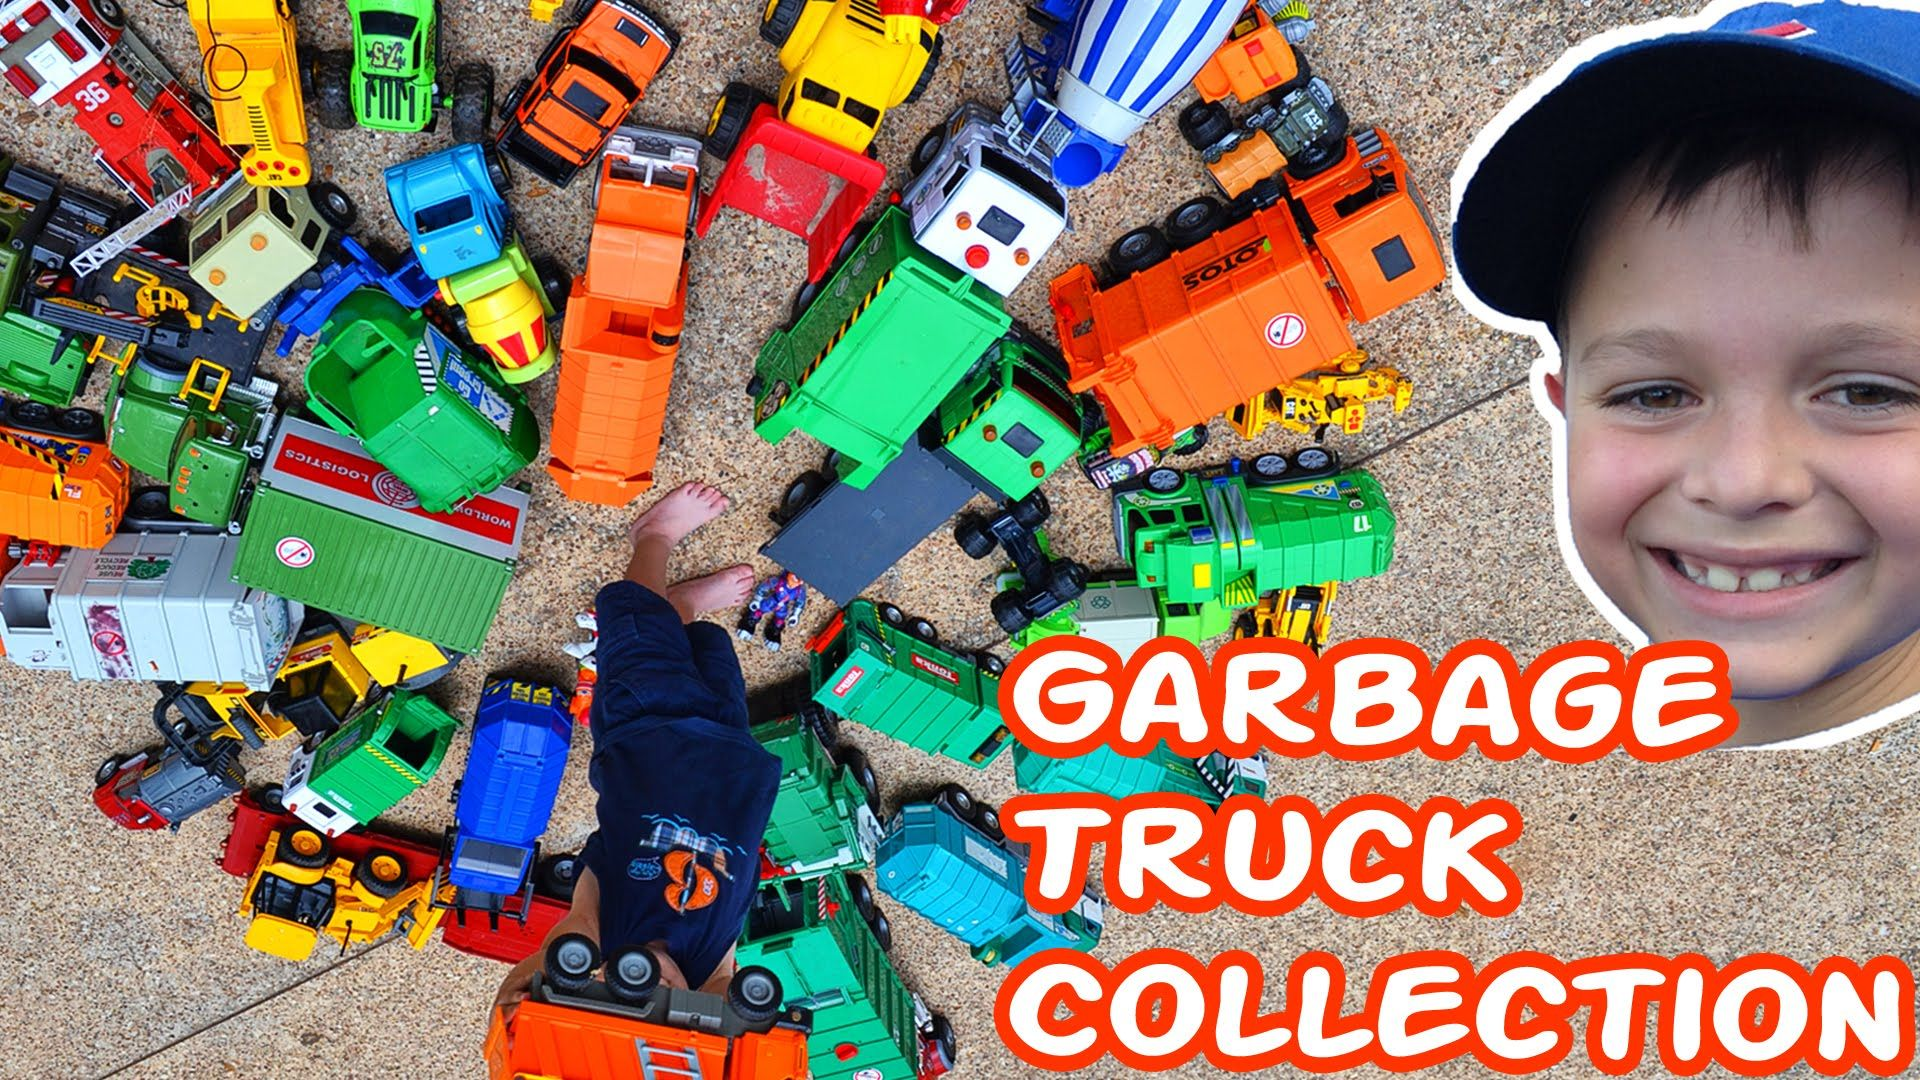 AMAZING Toy Garbage Truck Collection  l Garbage Trucks Rule l Videos For...